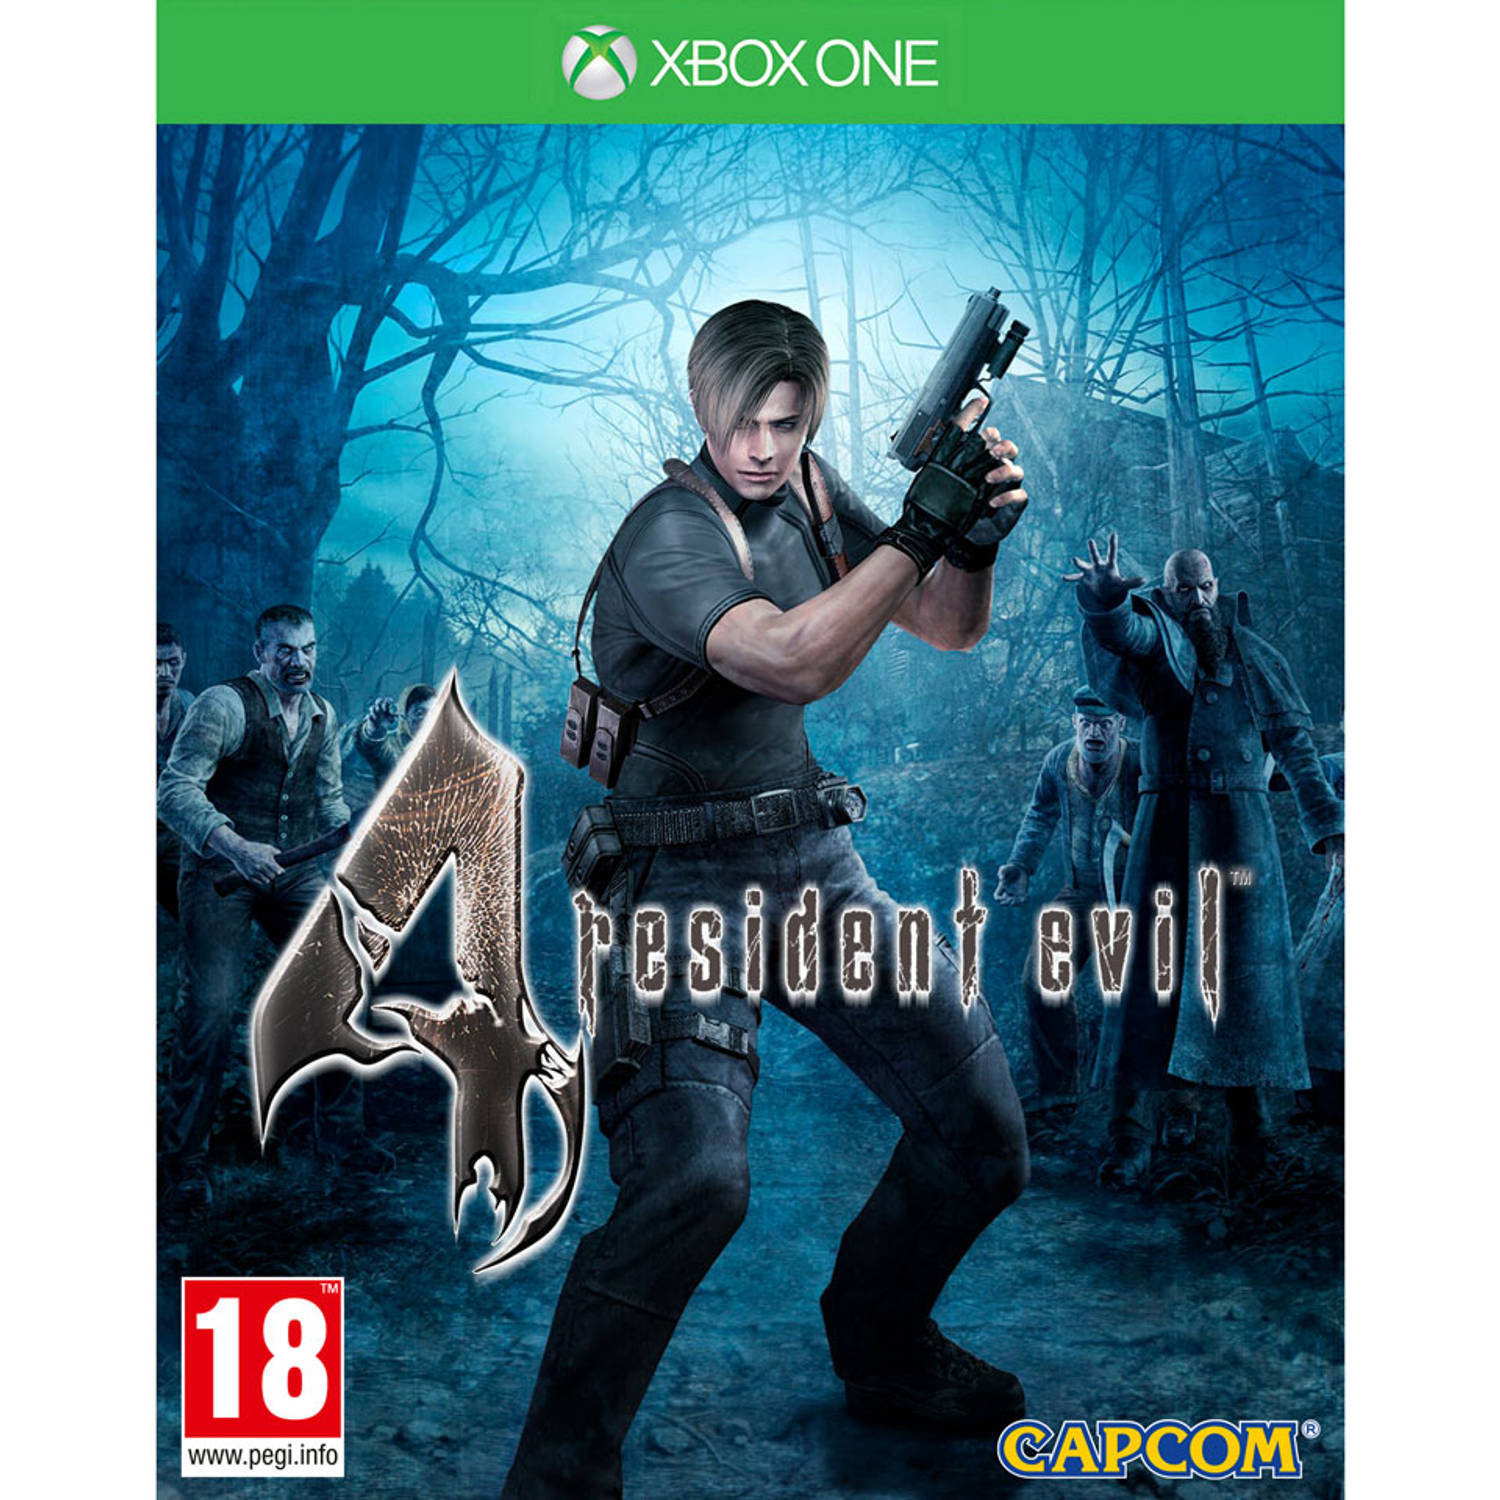 Xbox One Resident Evil 4 Remastered